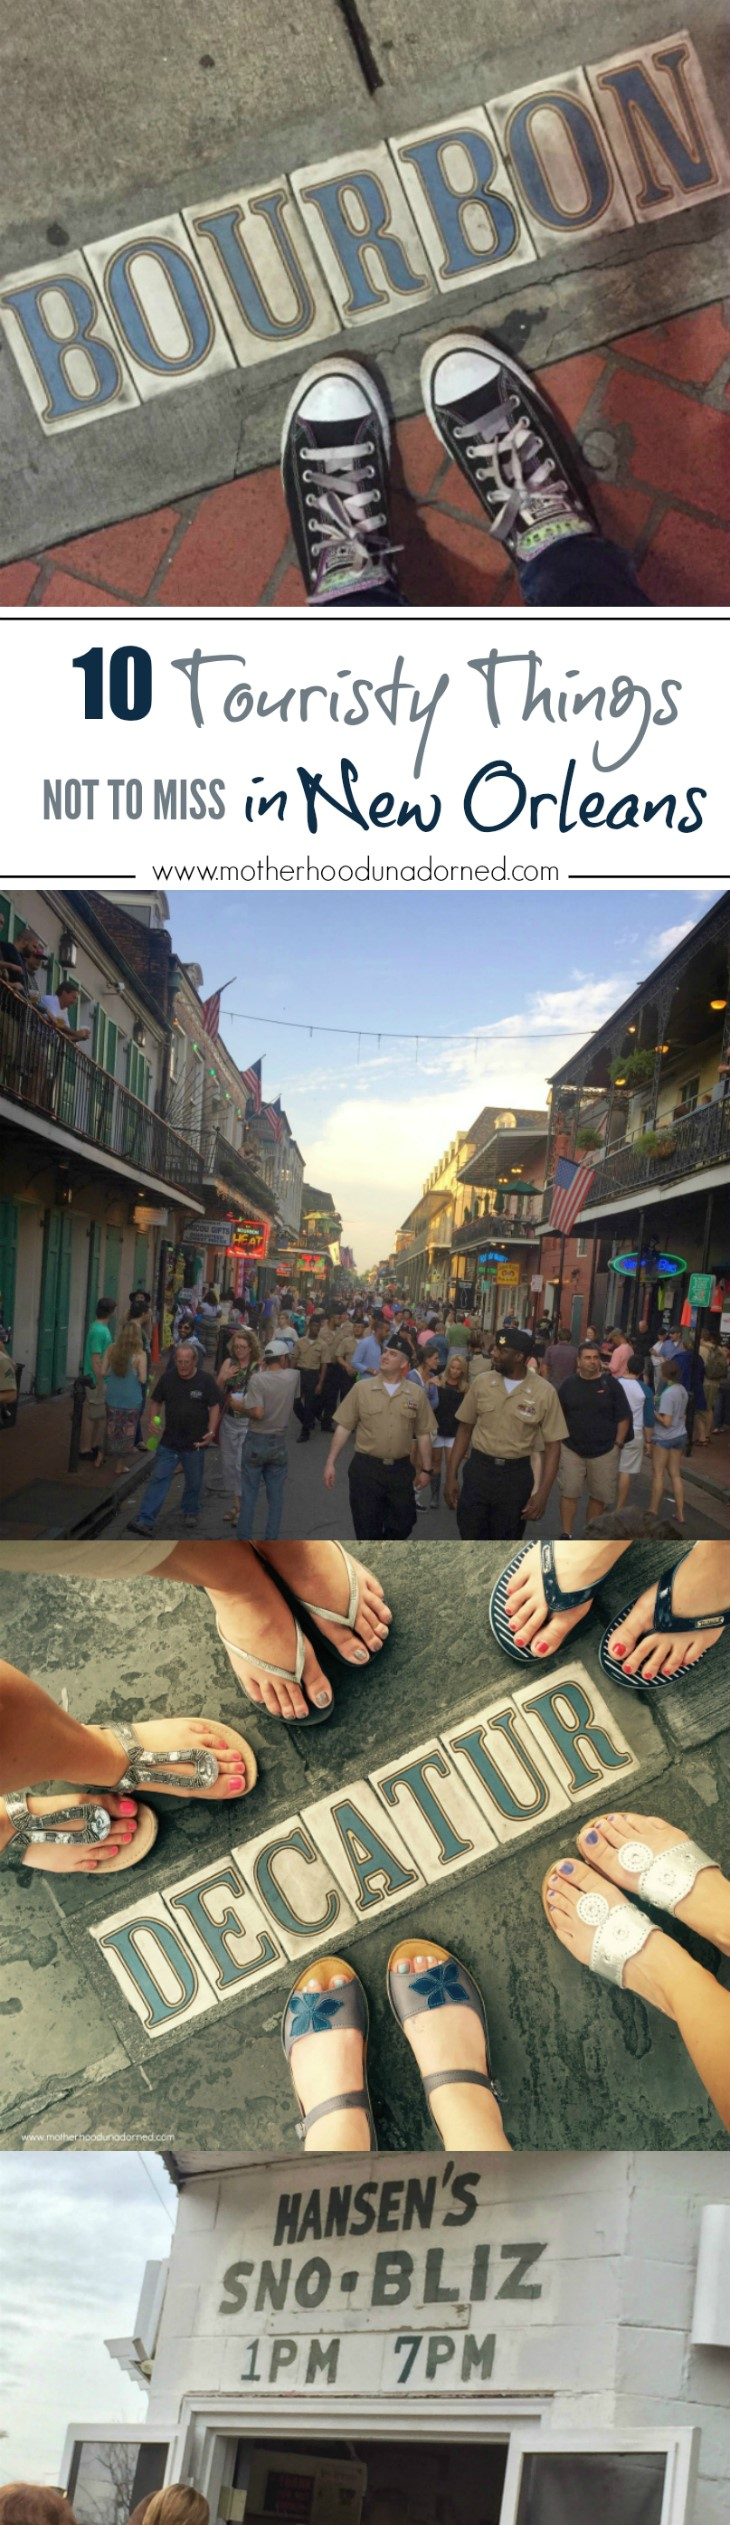 10 touristy things not to miss in new orleans